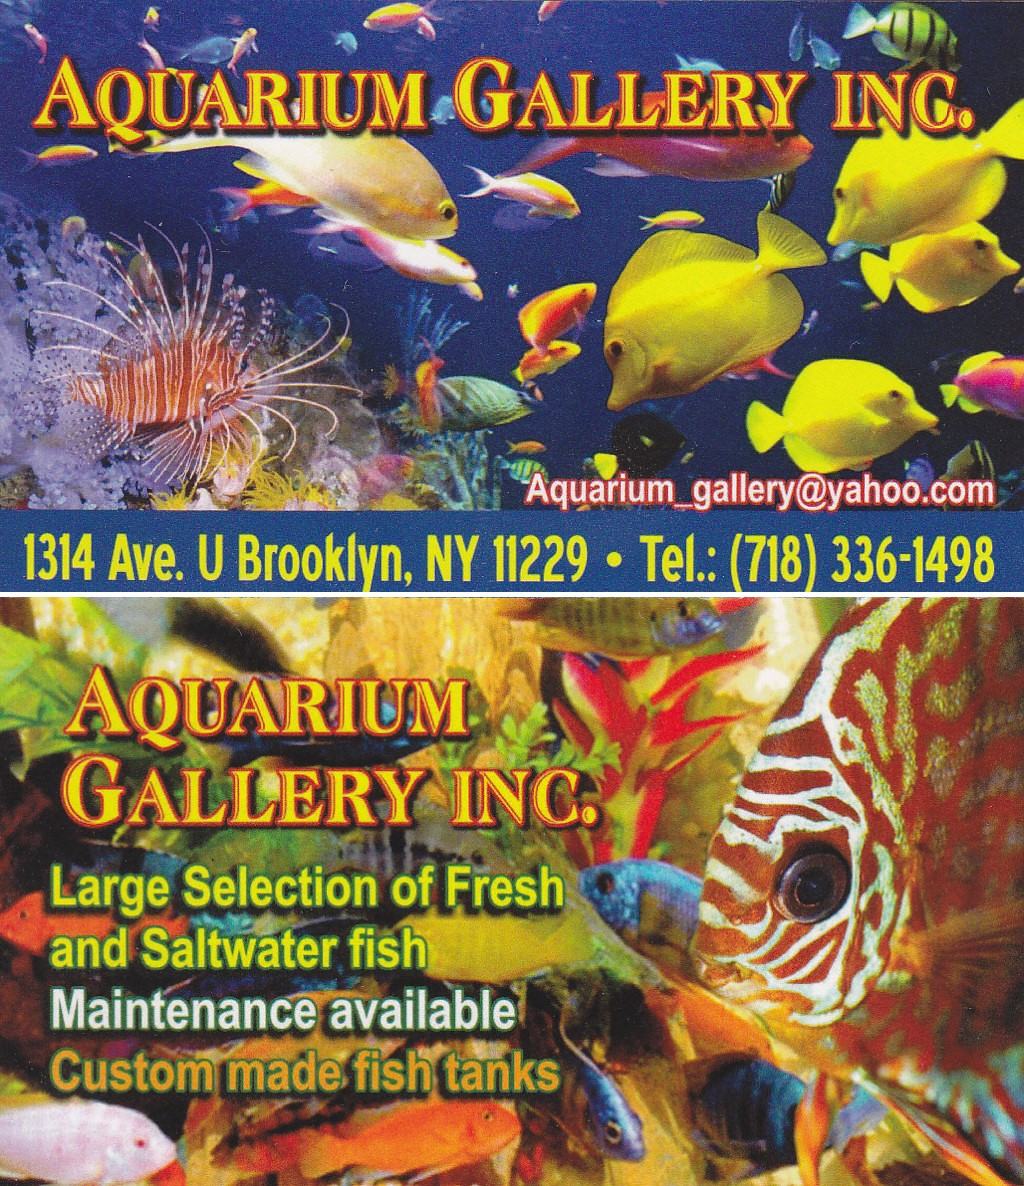 Fish aquarium business - Aquarium Gallery 1314 Avenue U 11229 Bet 13th And 14th Sts 718 336 1498 Business Card Scan